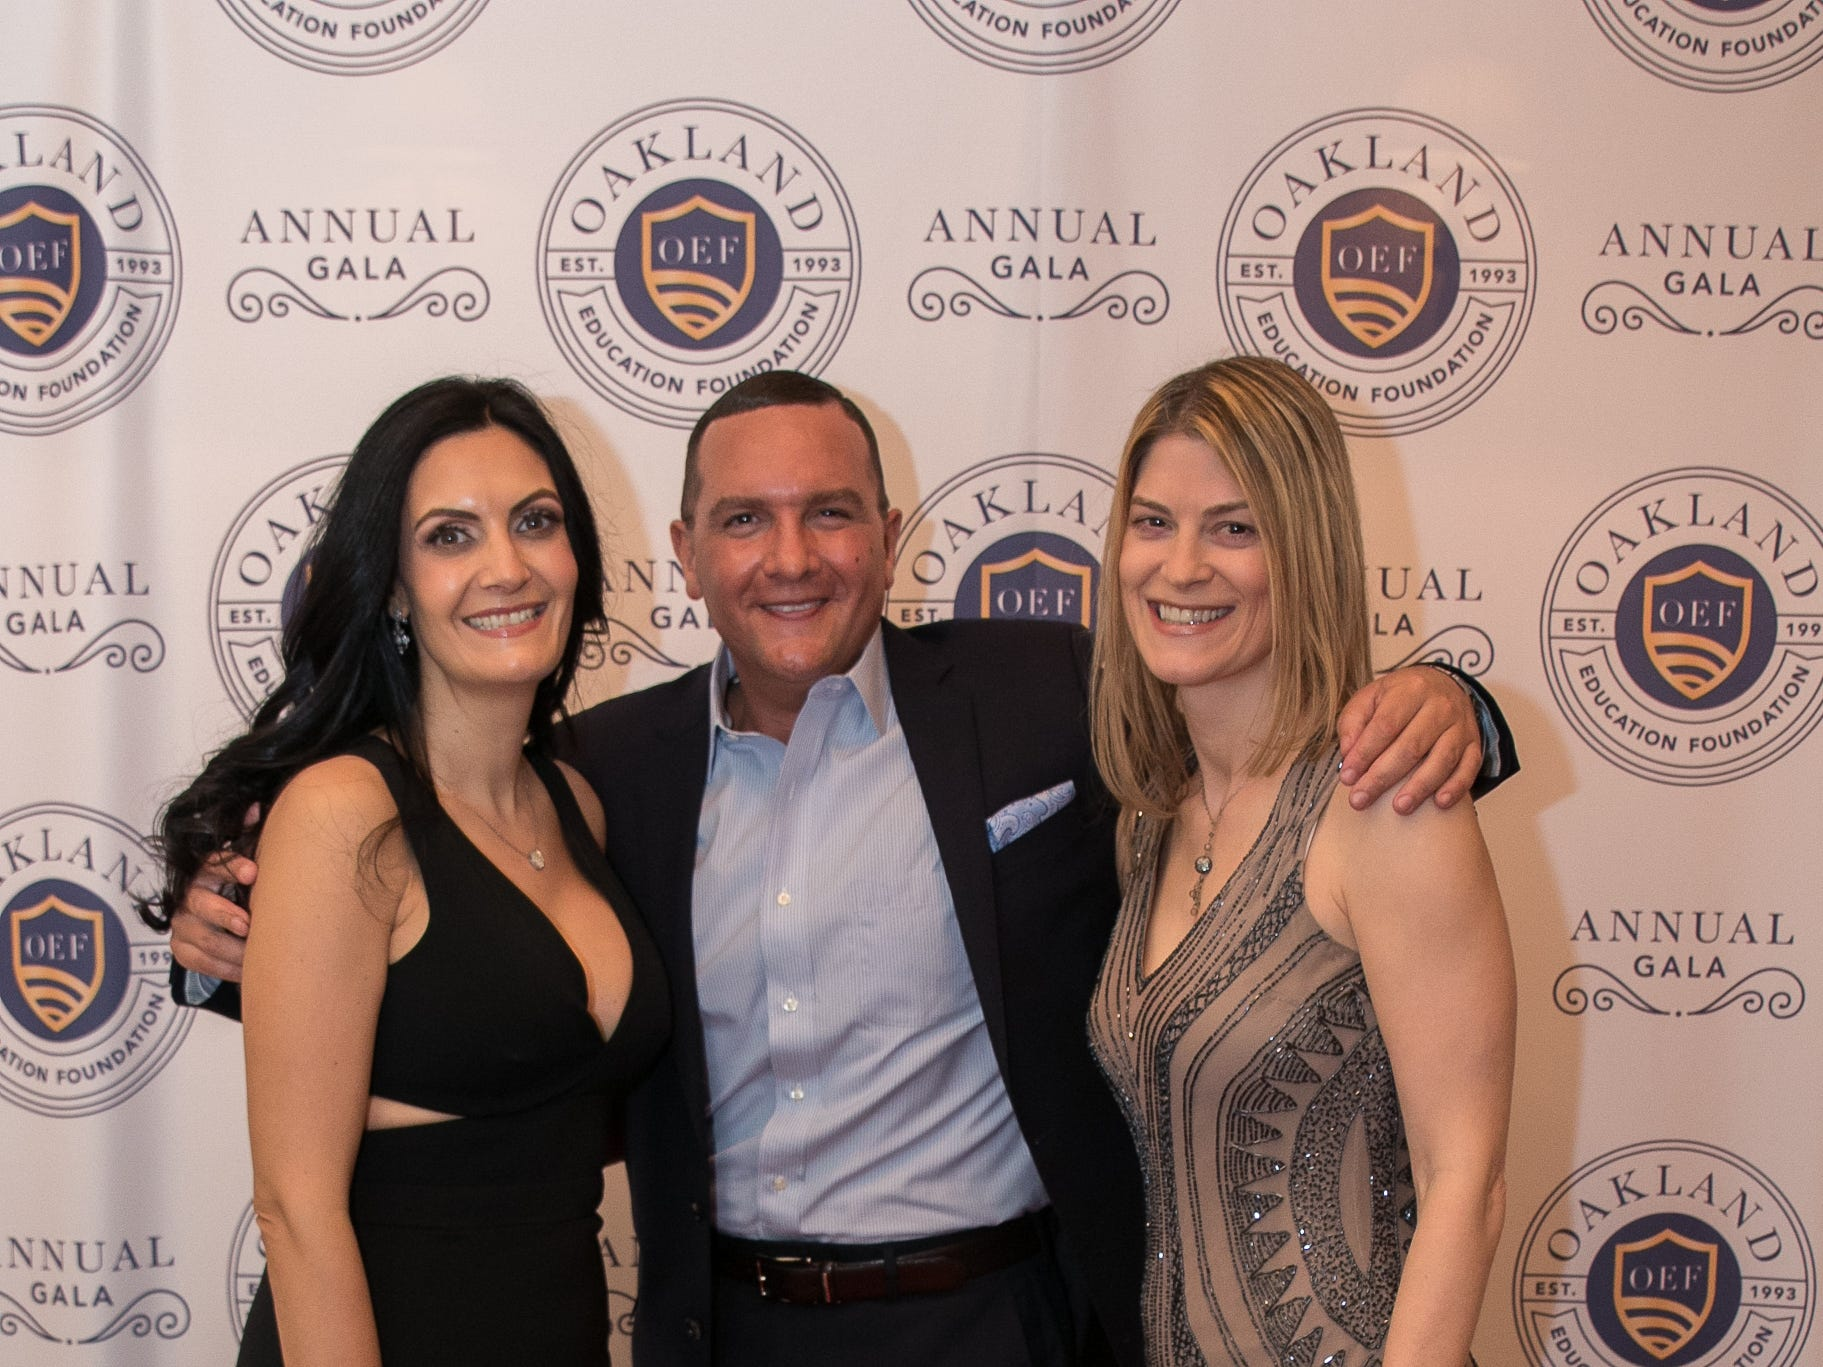 Angela Magliocchetti, Danny Charles, Leslie Trolaro. The Oakland Education Foundation held their 25th Anniversary Casino Night Gala at Preakness Hills Country Club in Wayne. 03/16/2019